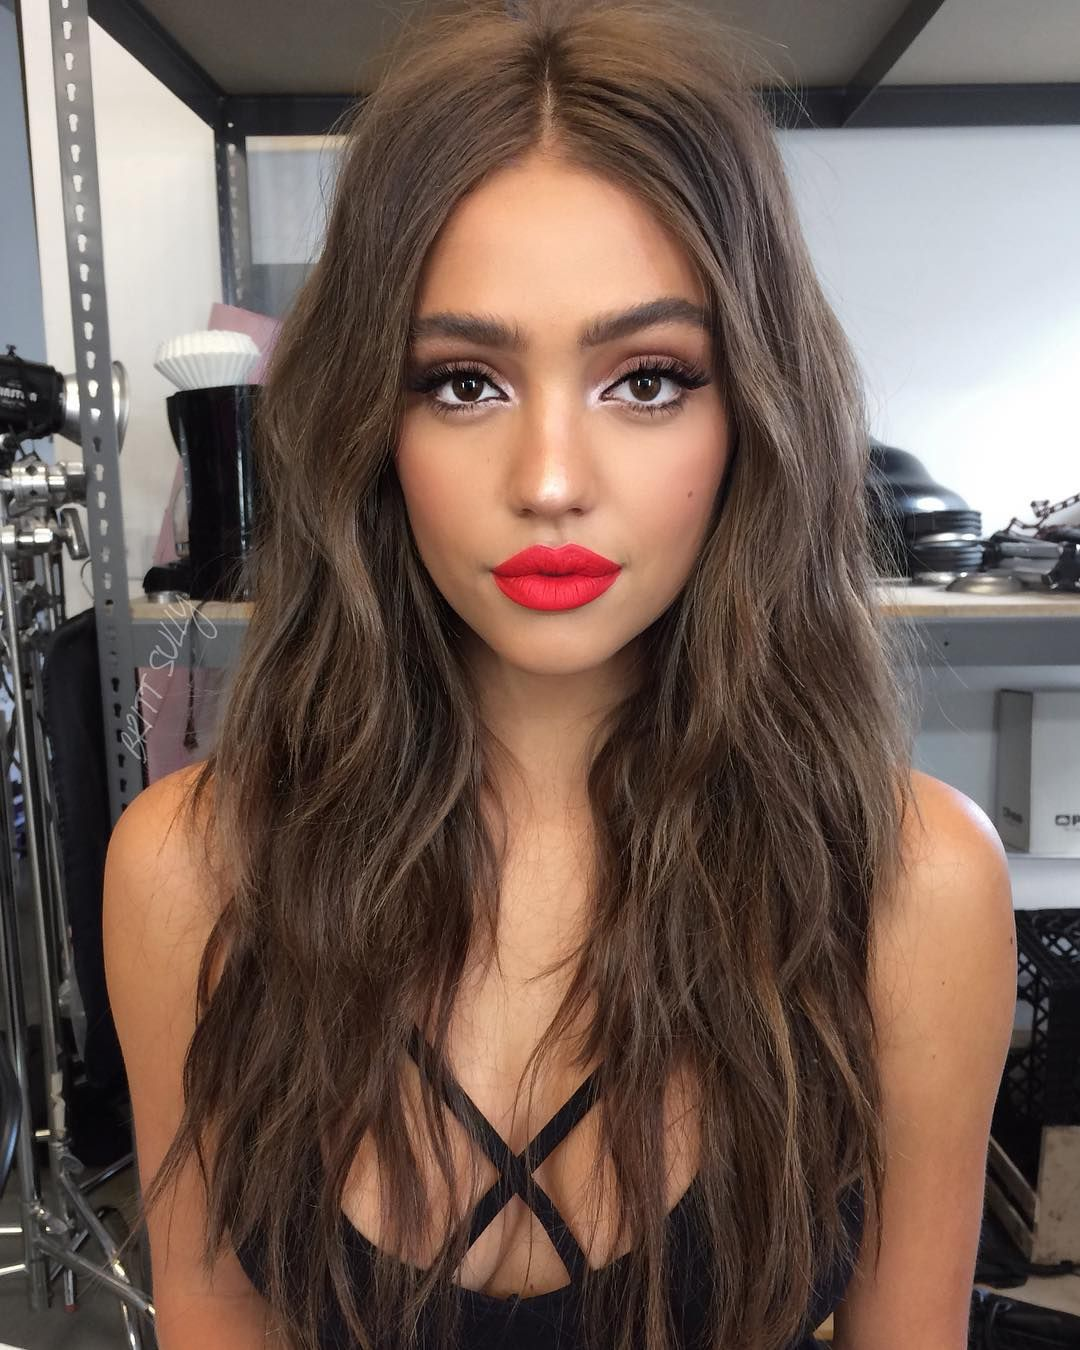 Love this classic makeup look perfect for date night